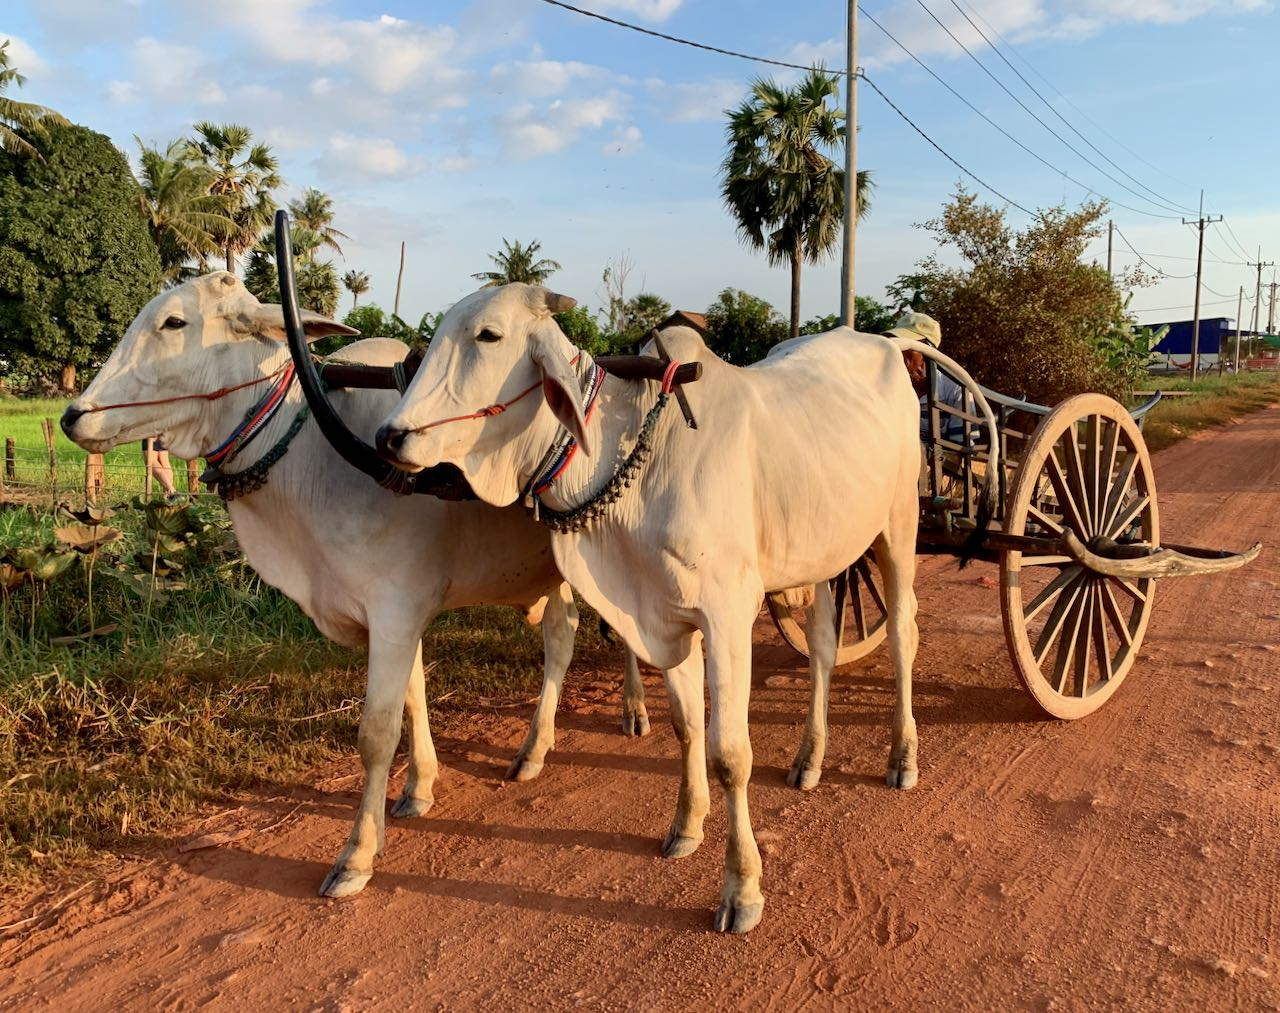 Ox Cart Adventure Siem Reap Cambodia